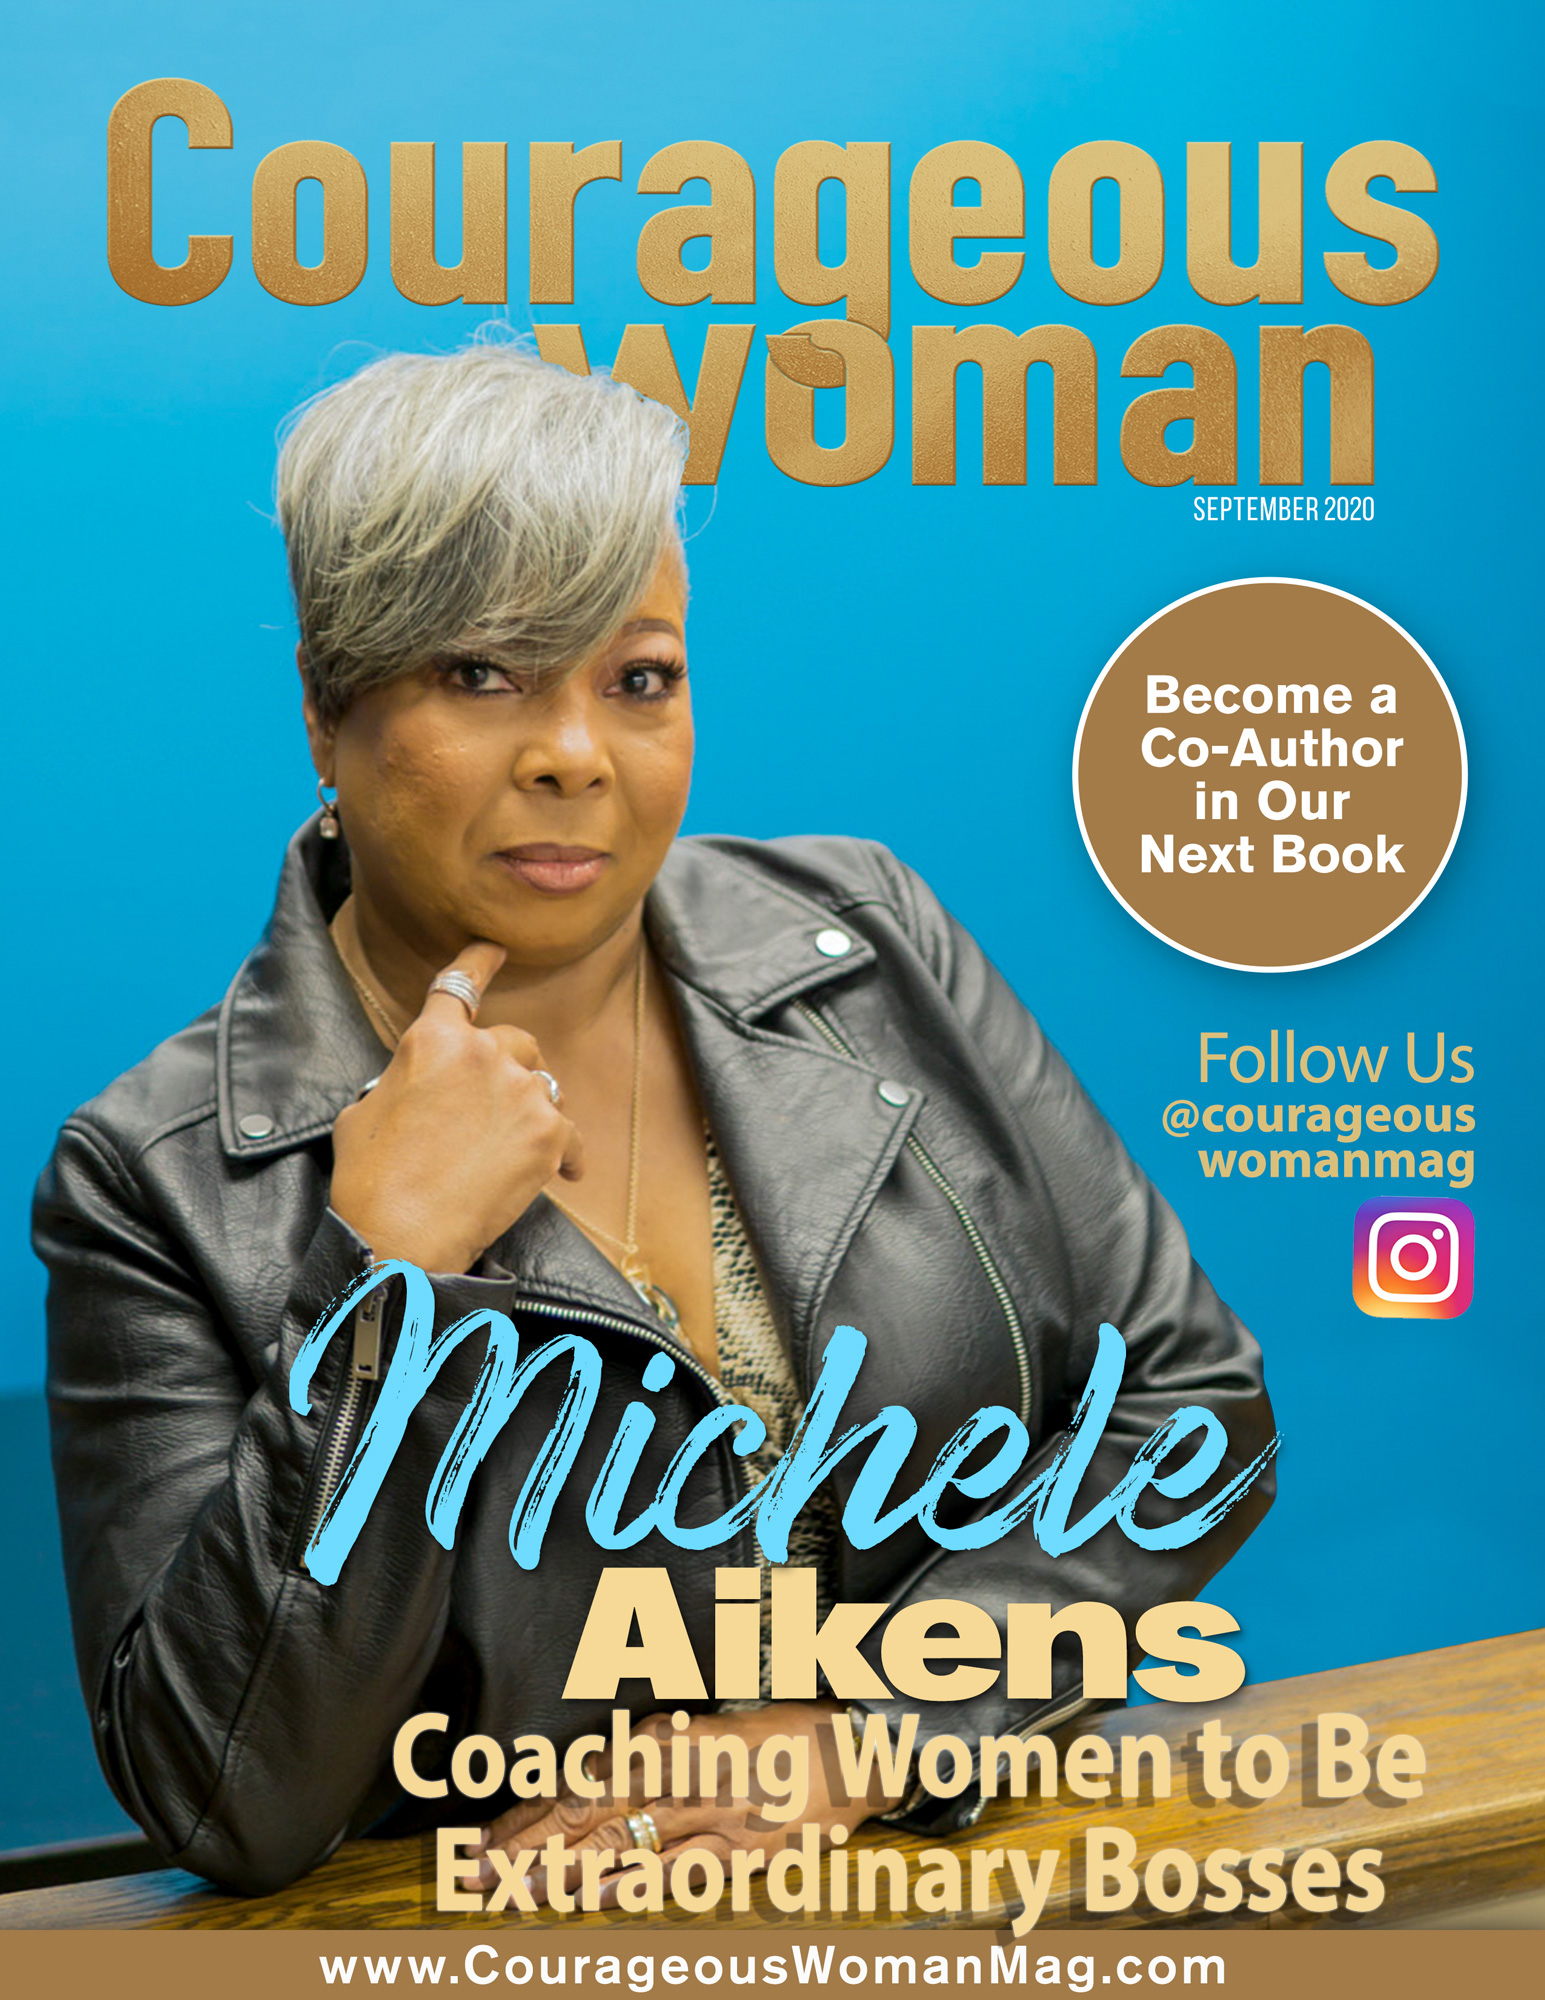 Michele-aikens-Courageous-woman-magazine